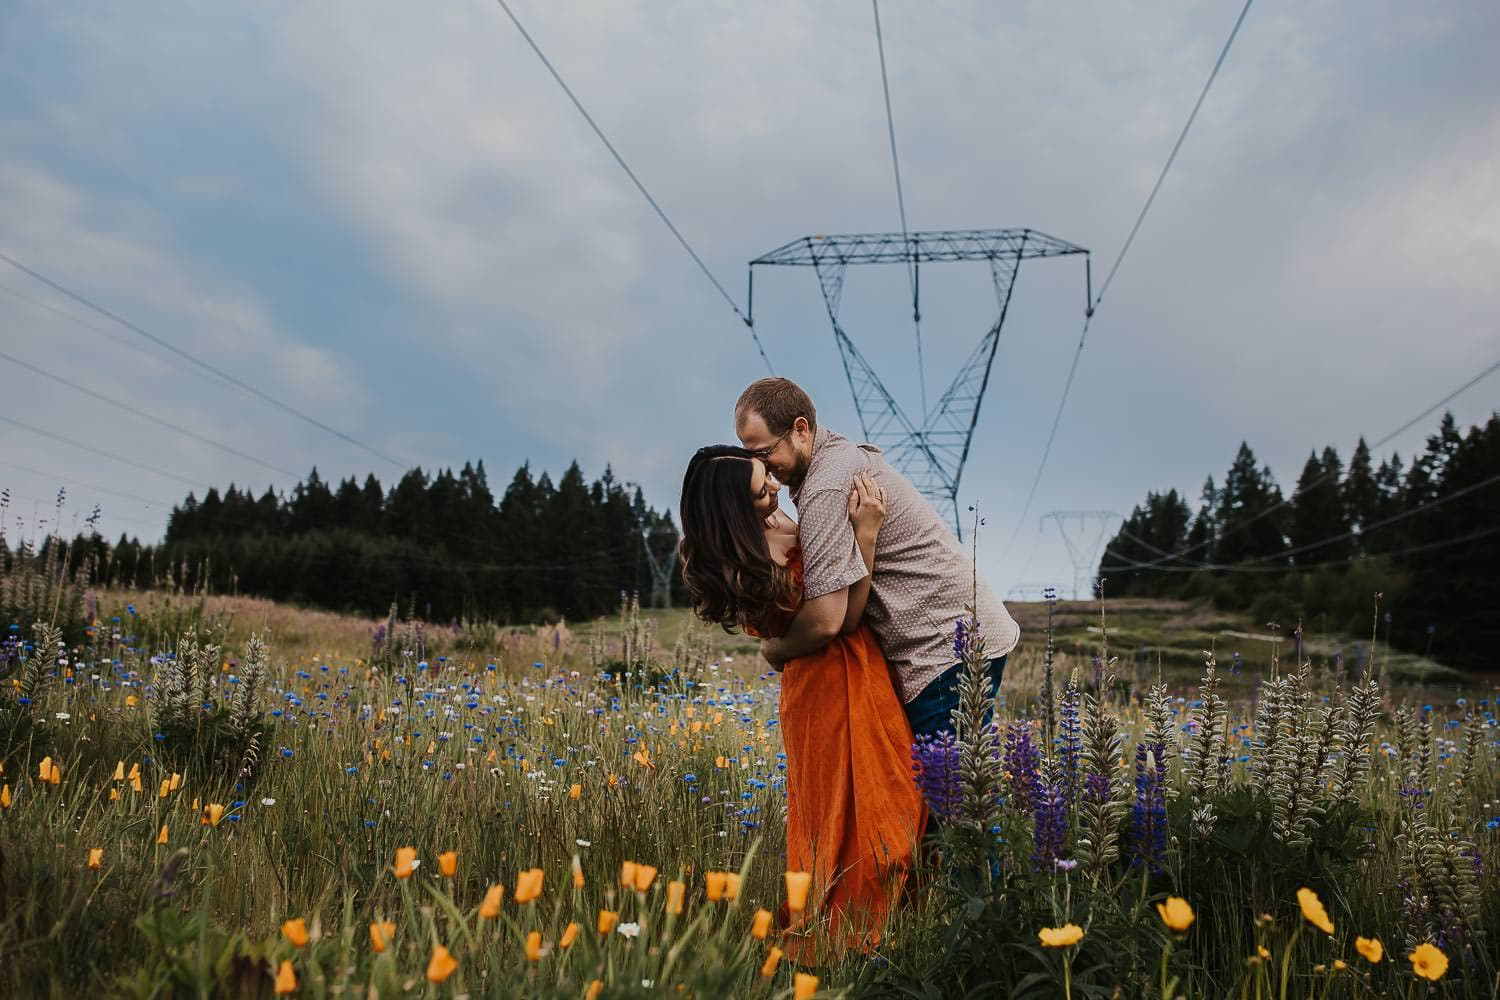 couple dancing in a filed of flowers with power lines behind them - spring season photos